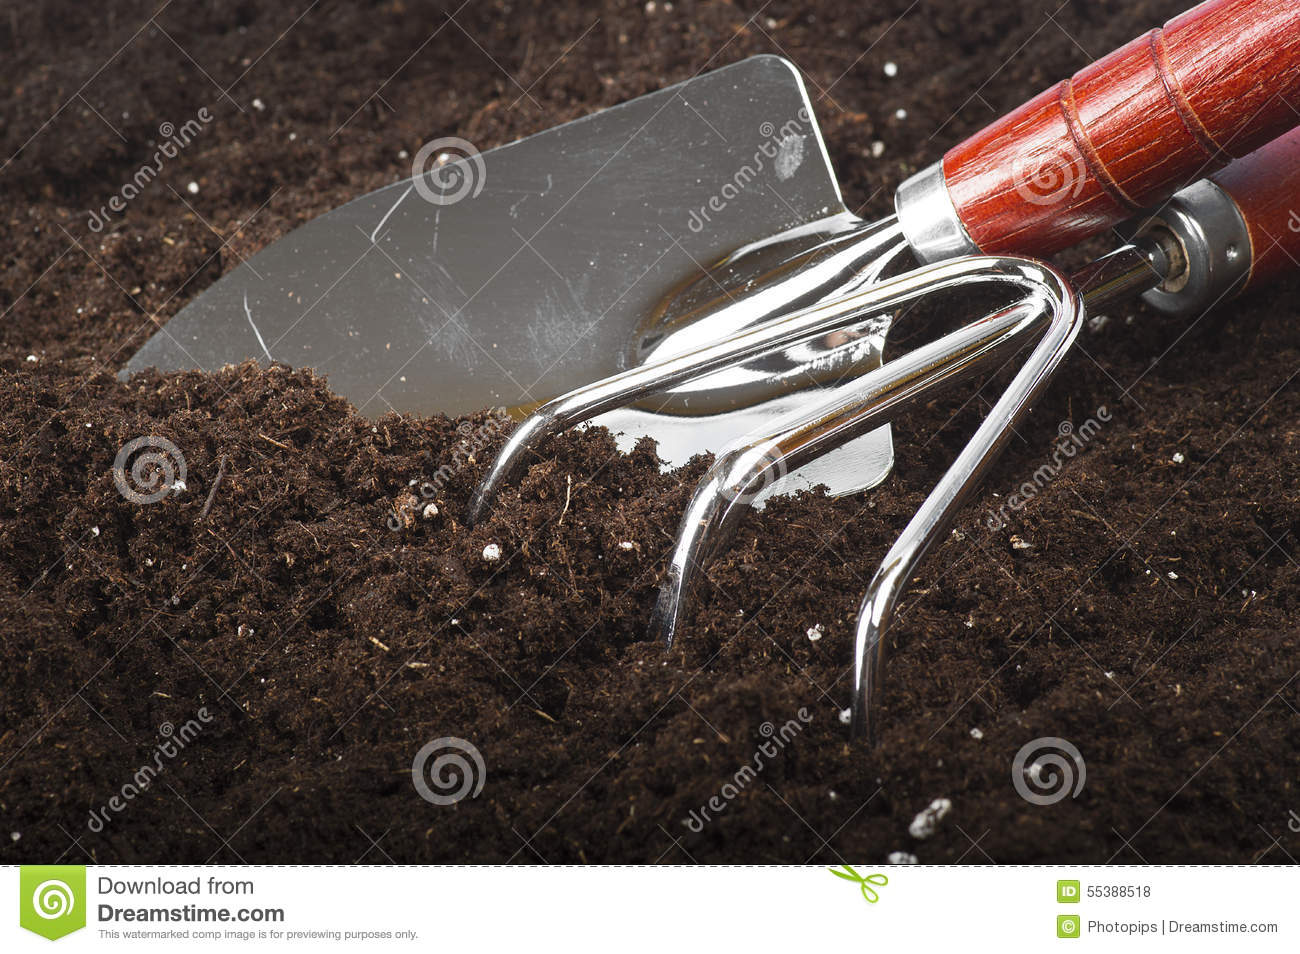 Gardening tools stock photo image 55388518 for Soil utensils